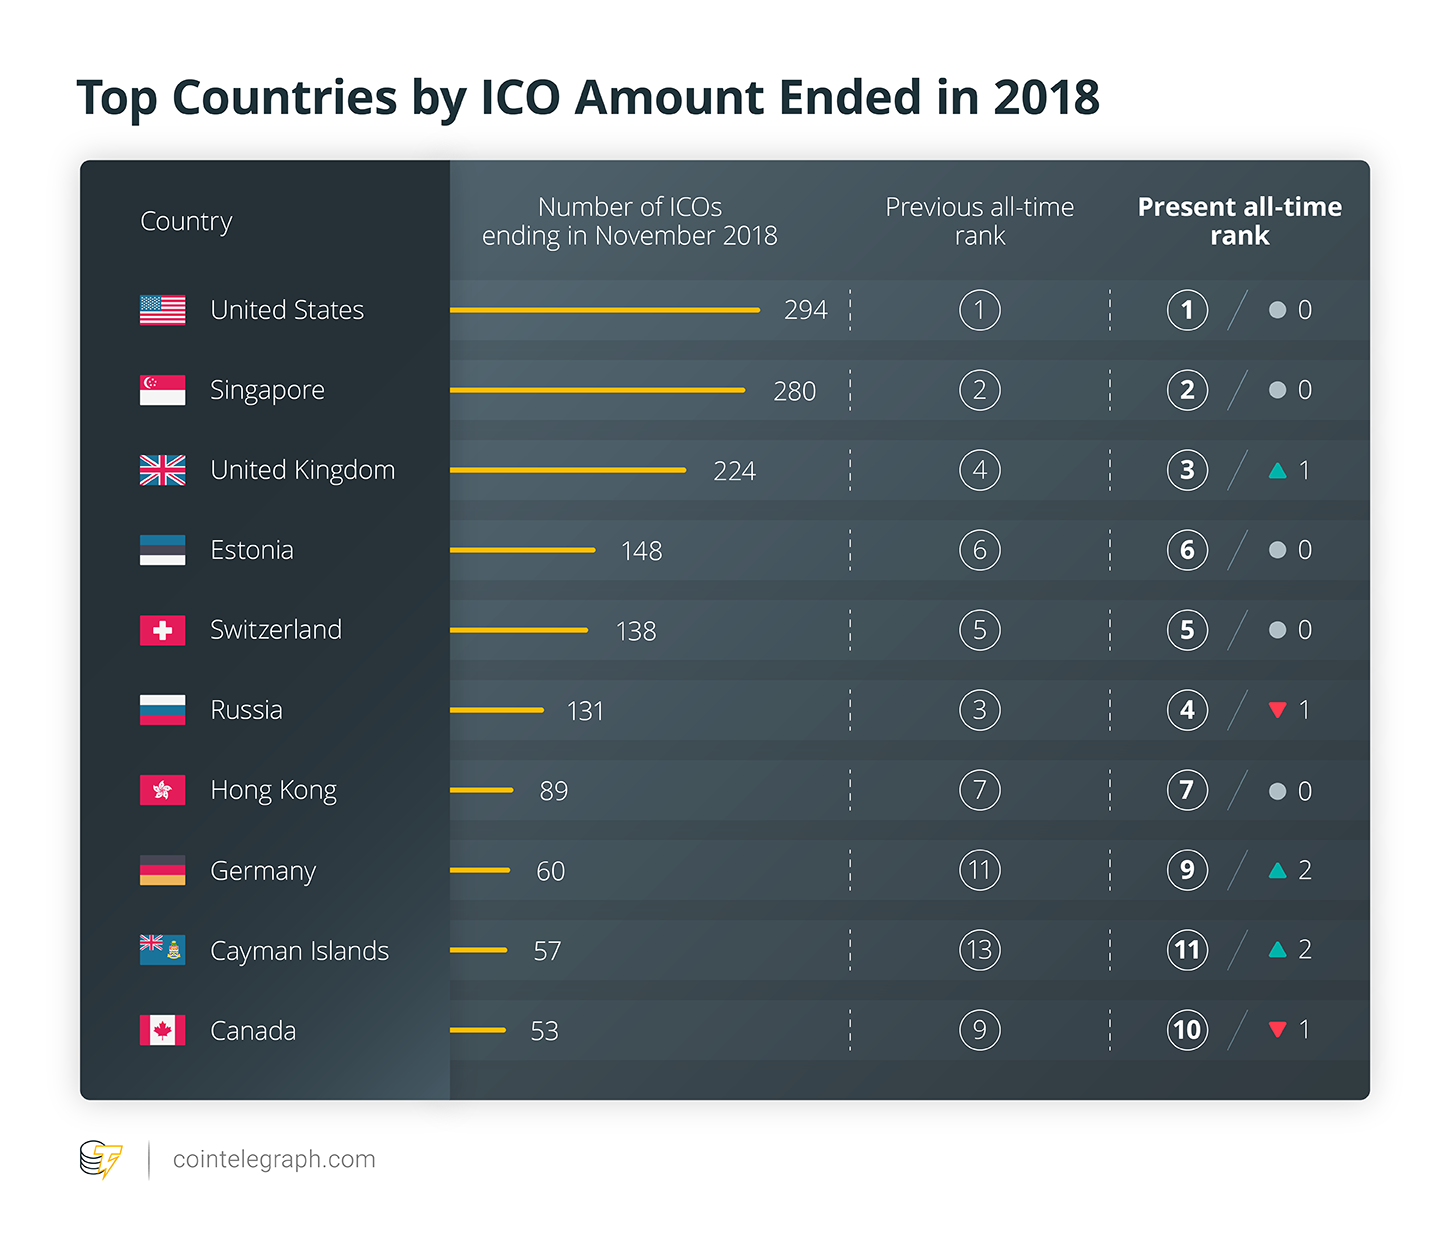 Top Countries by ICO Amount Ended in 2018